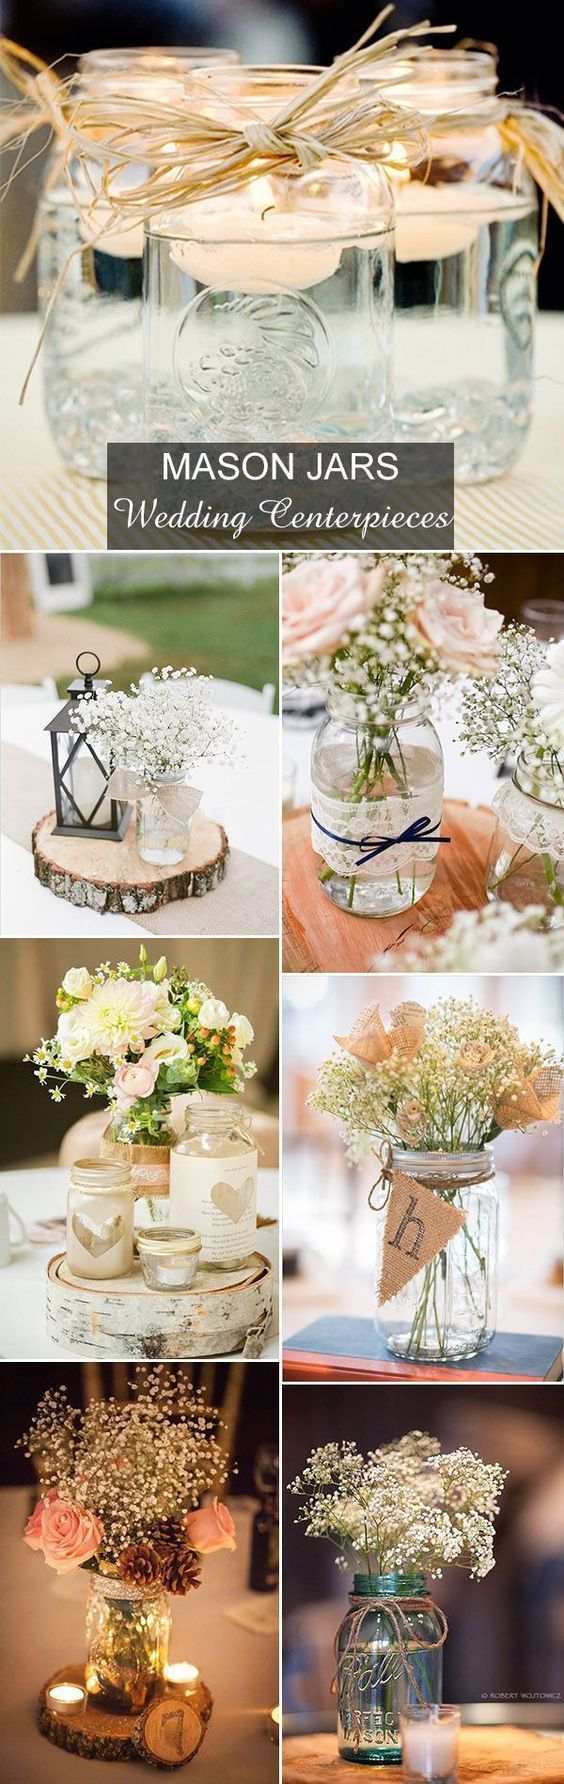 If you're looking to give your wedding a rustic country touch, try out these mason jar centerpiece ideas. They'll be the highlight of your beautiful presentation.